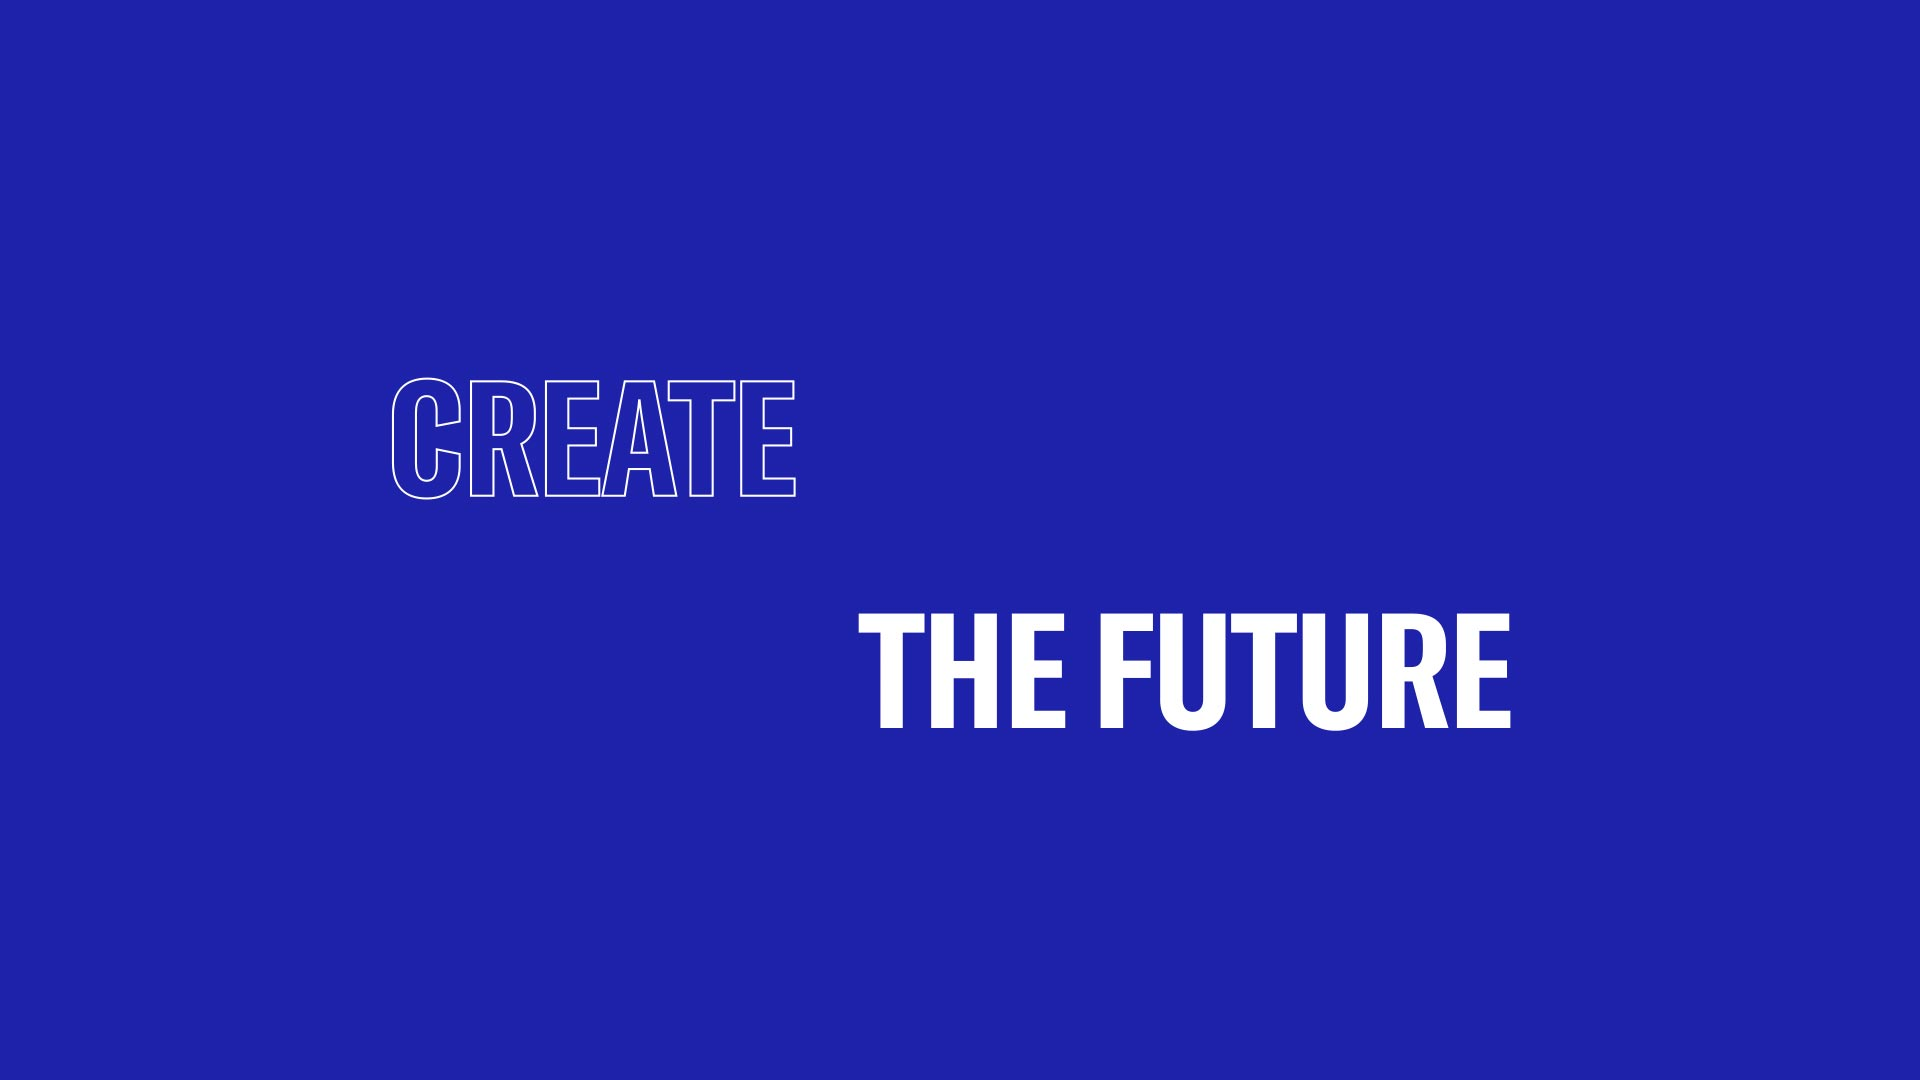 Create The Future